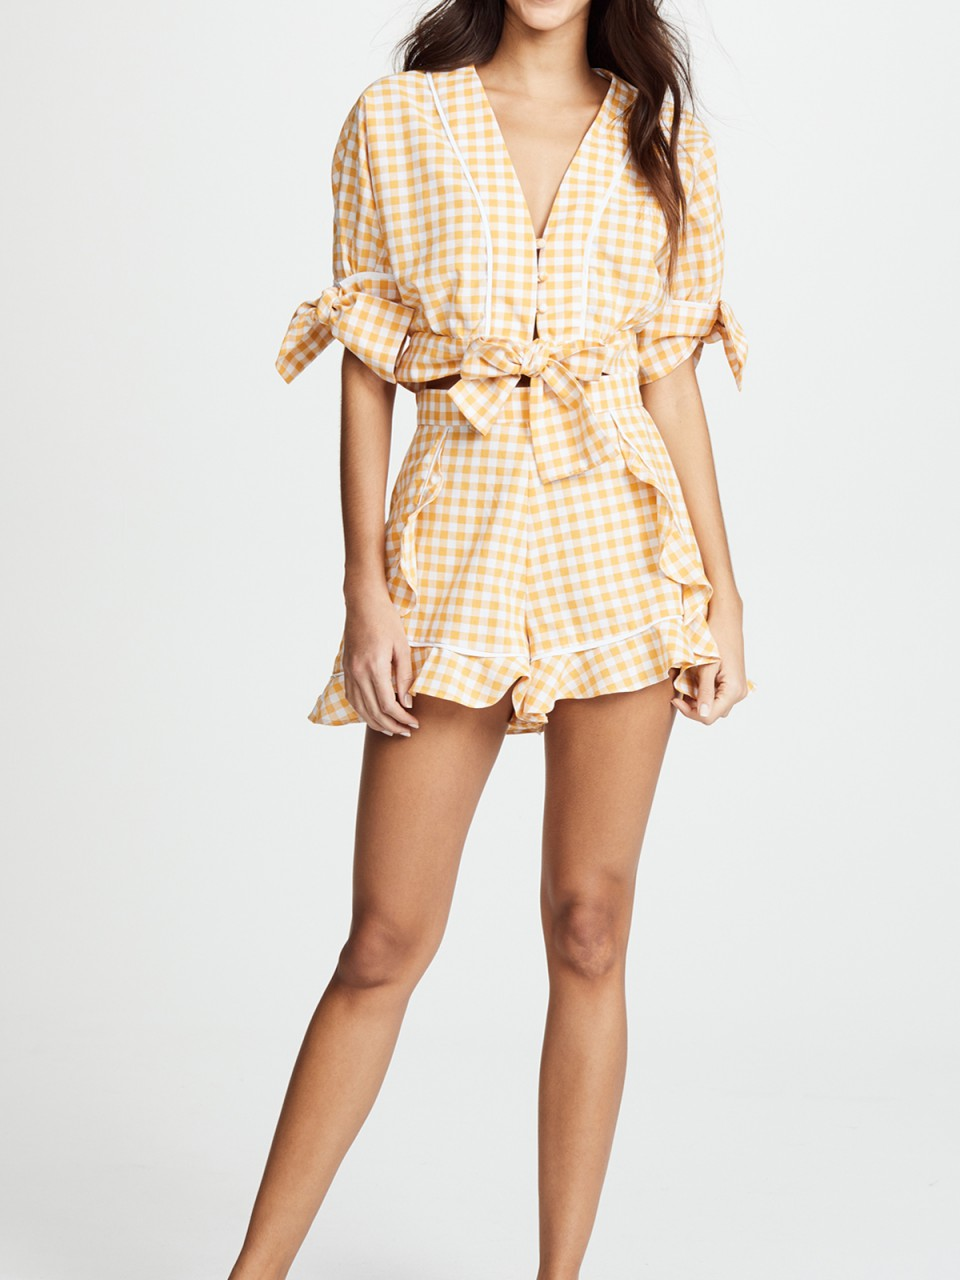 CHLOETING_shopbop_Apr 2018_3